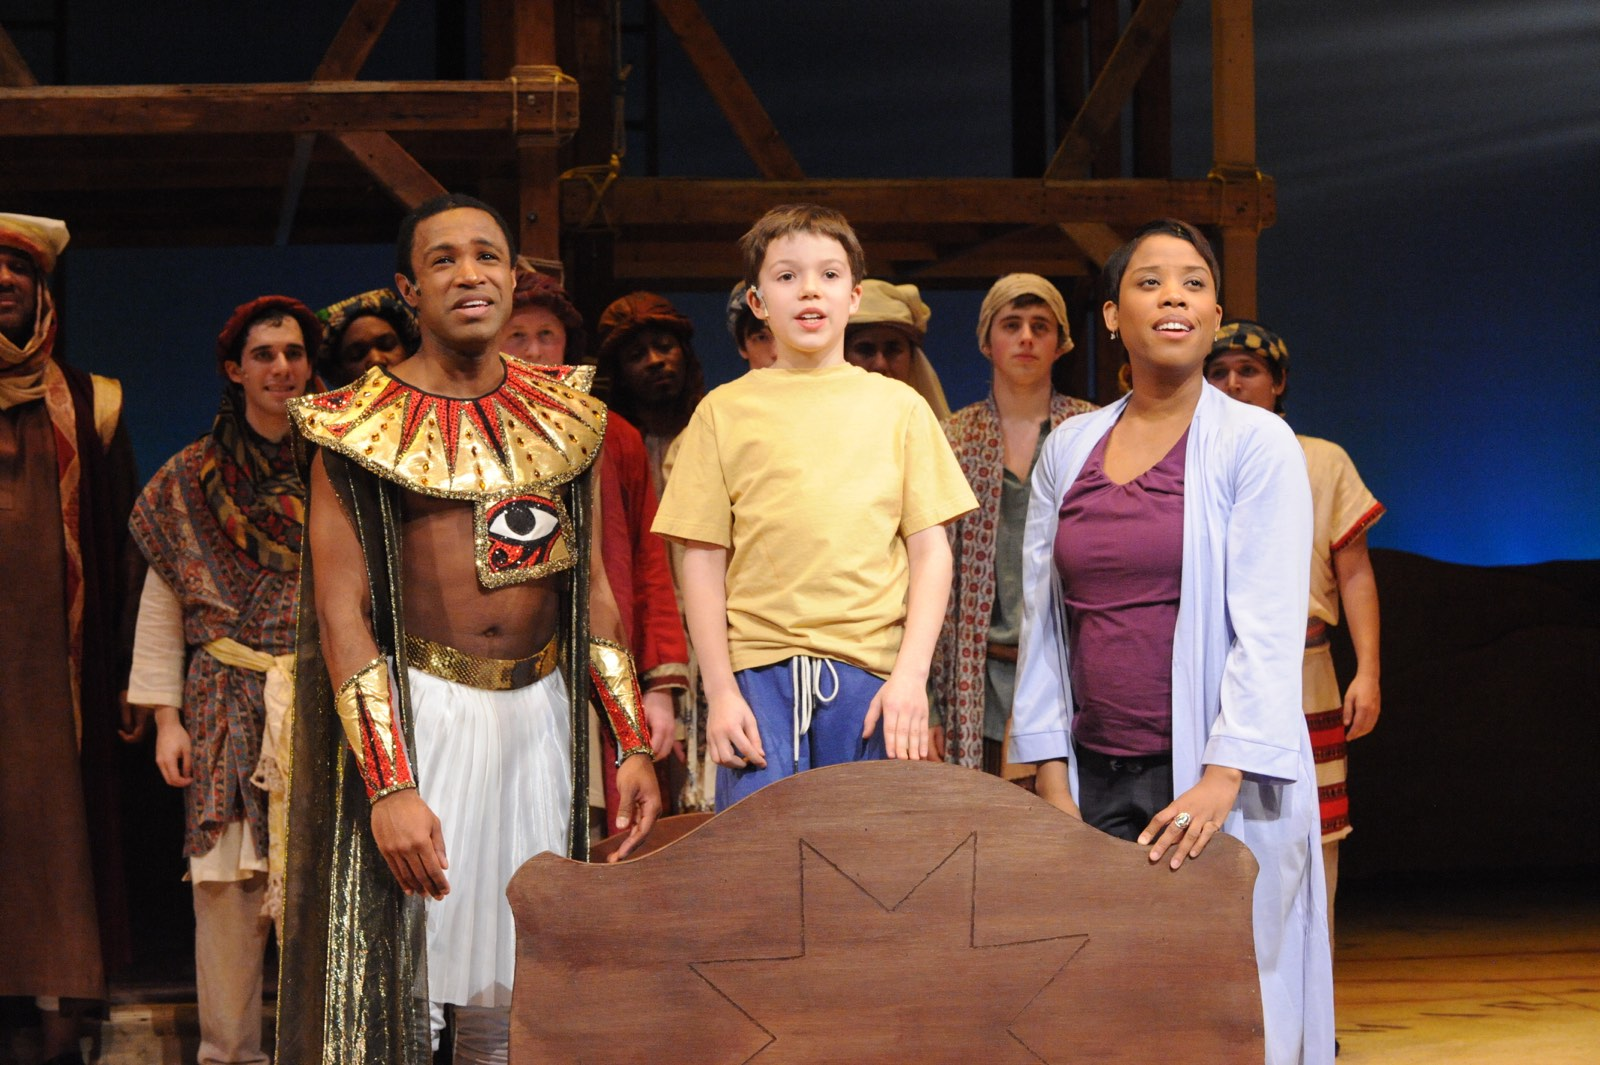 JOSEPH AND THE AMAZING TECHNICOLOR DREAMCOAT - Alan Wiggins as Joseph, Sean Silvia as the Boy, and Eleasha Gamble* as the Narrator in front of the ensemble<br>Set design by Eugenia Furneaux, Lighting by Dan Covey, Costumes by Ivania Stack - photo by Stan Barouh